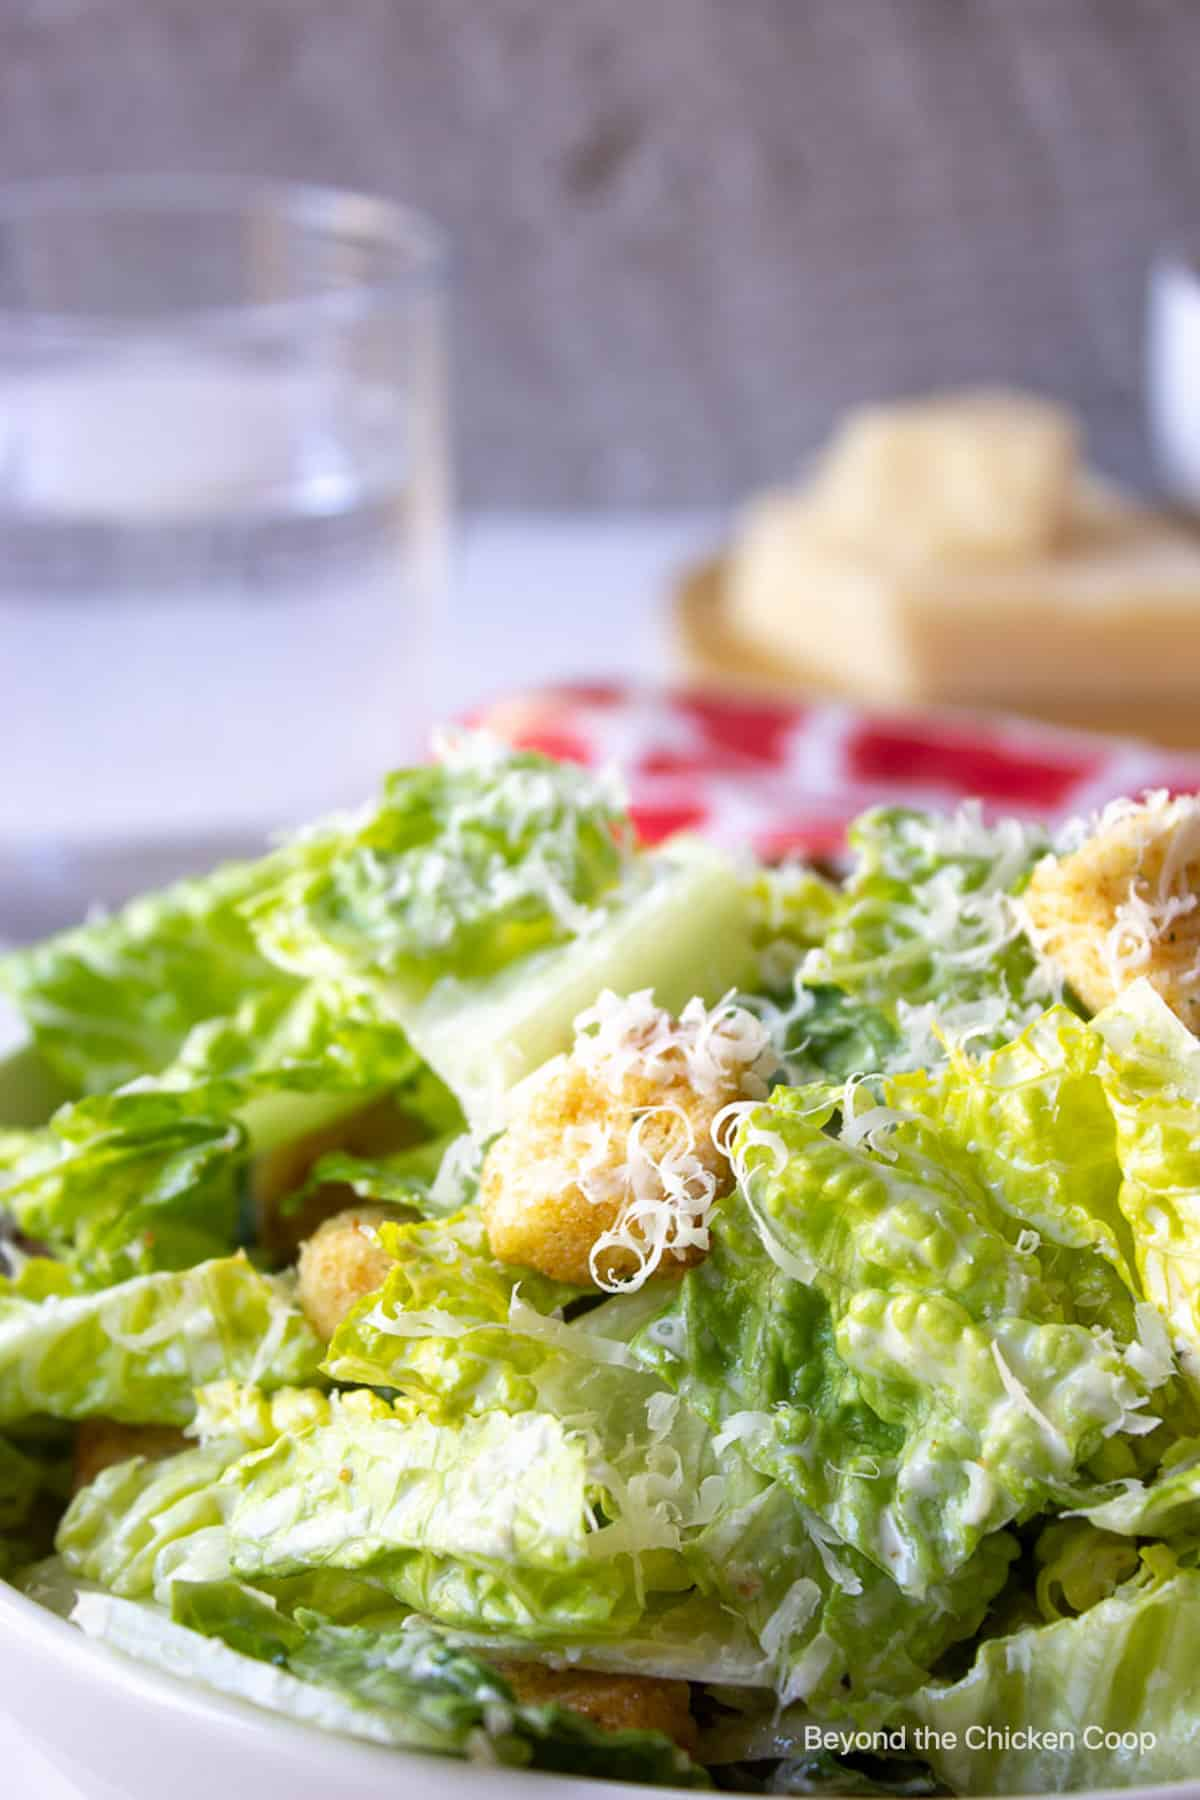 A green salad topped with shredded cheese and croutons.